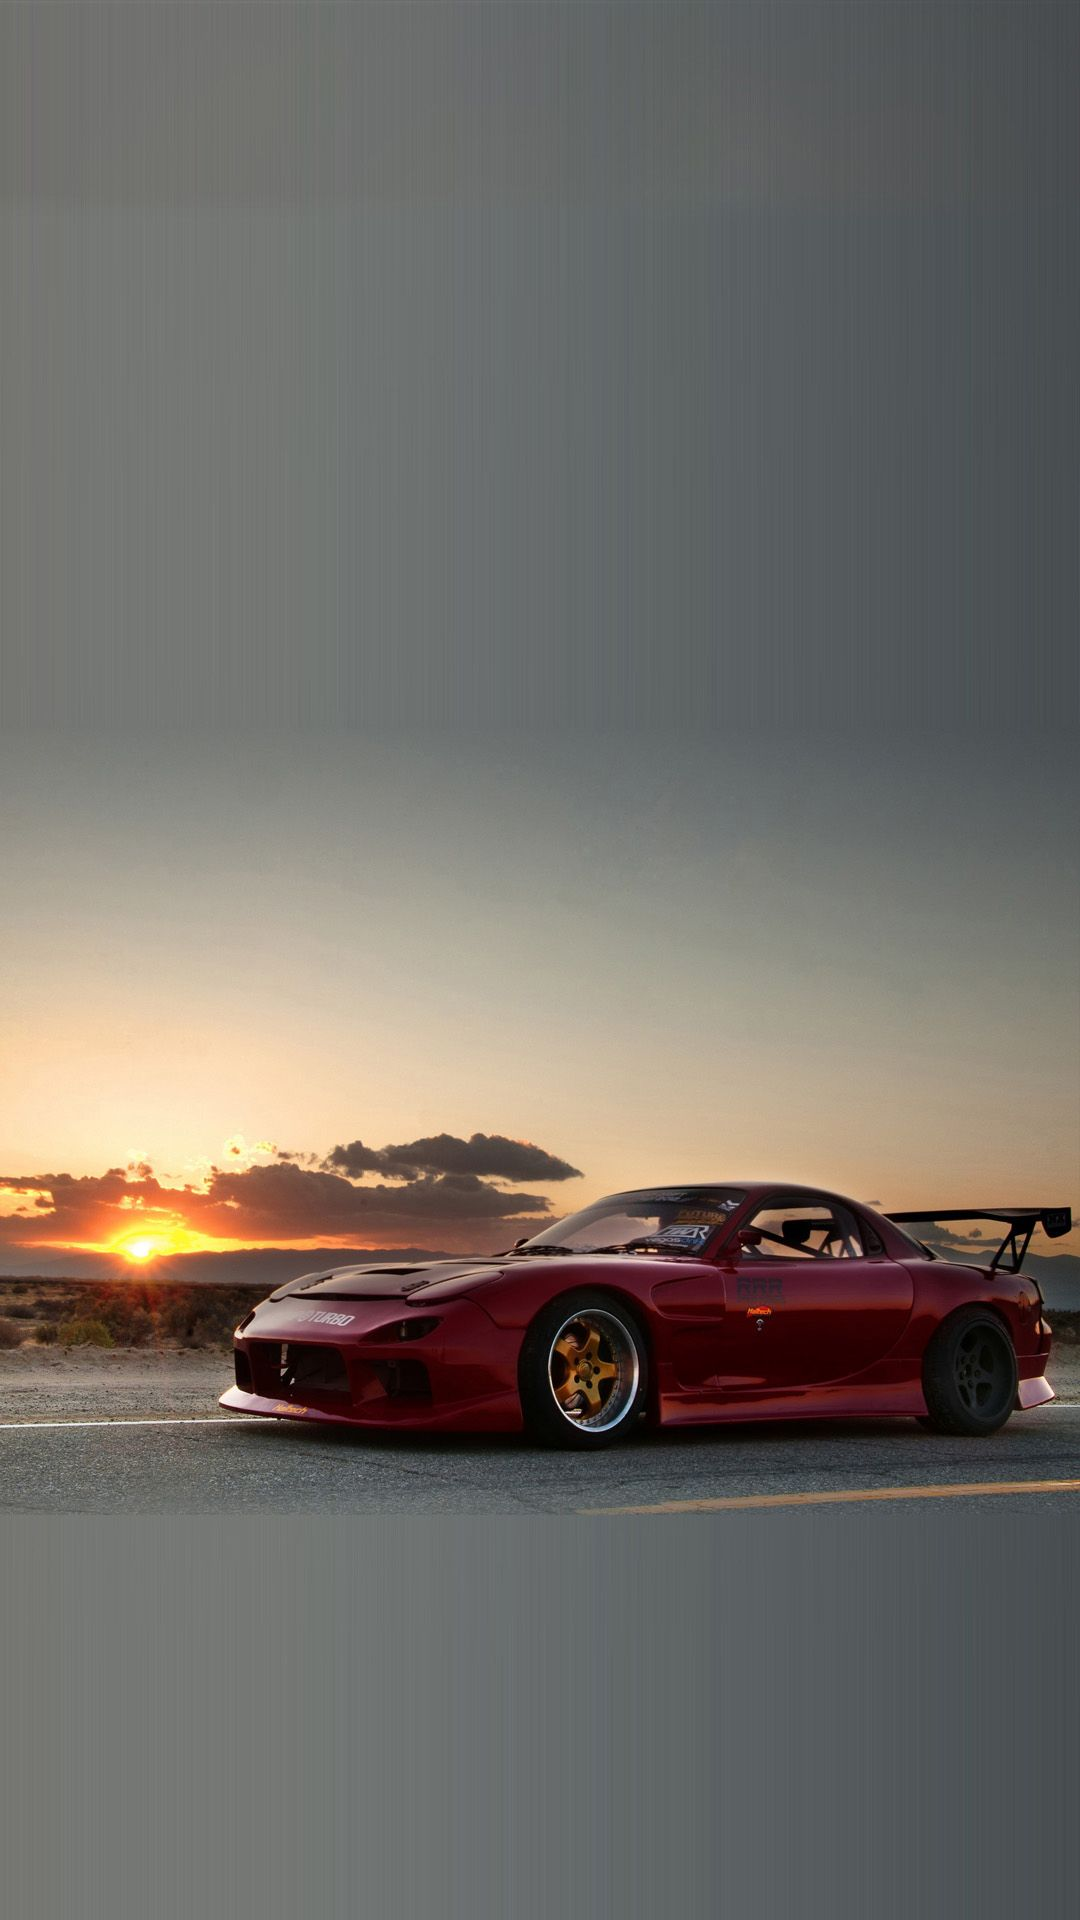 Cars Mazda RX7 Sunset Android Wallpaper wallpapers hd